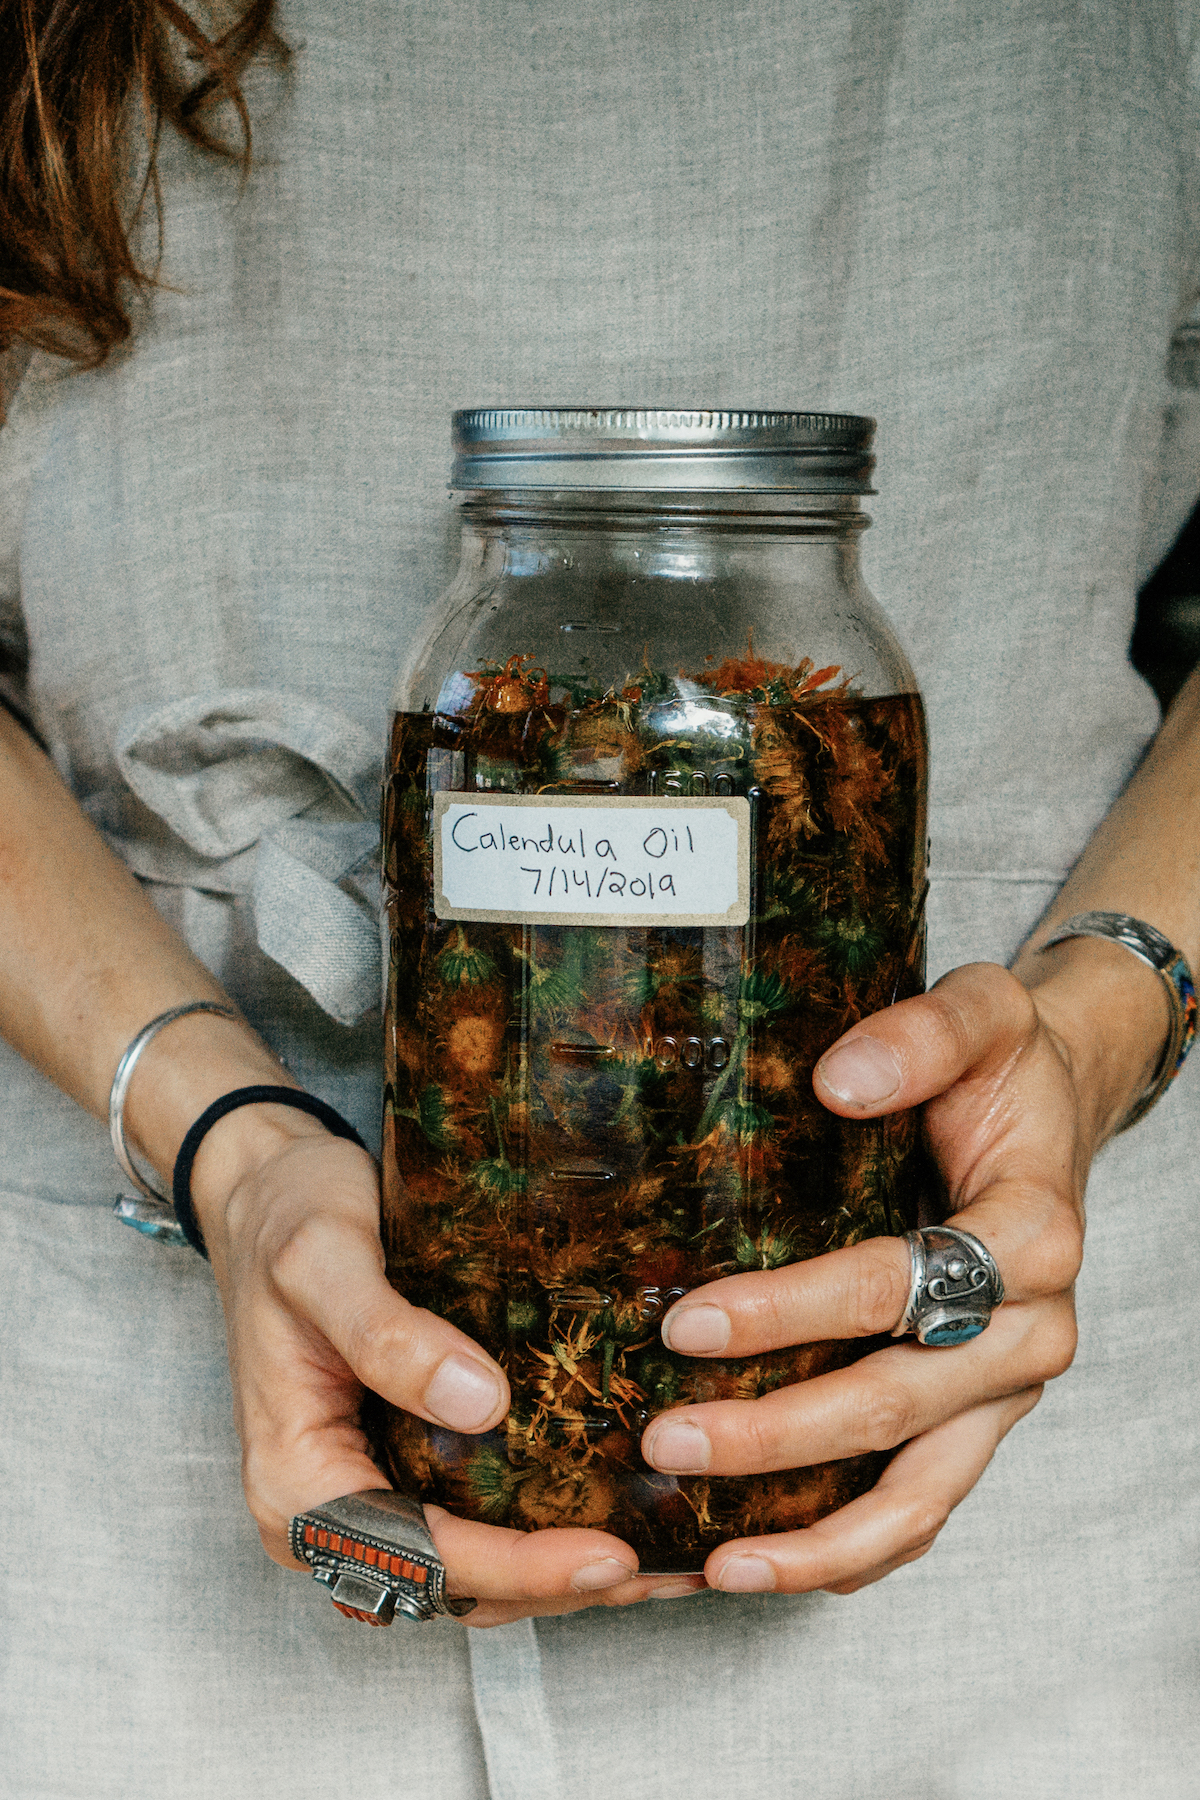 Entrepreneur Herbalist Path - learn how to making herbal infused oils in the Introductory Herbal Course